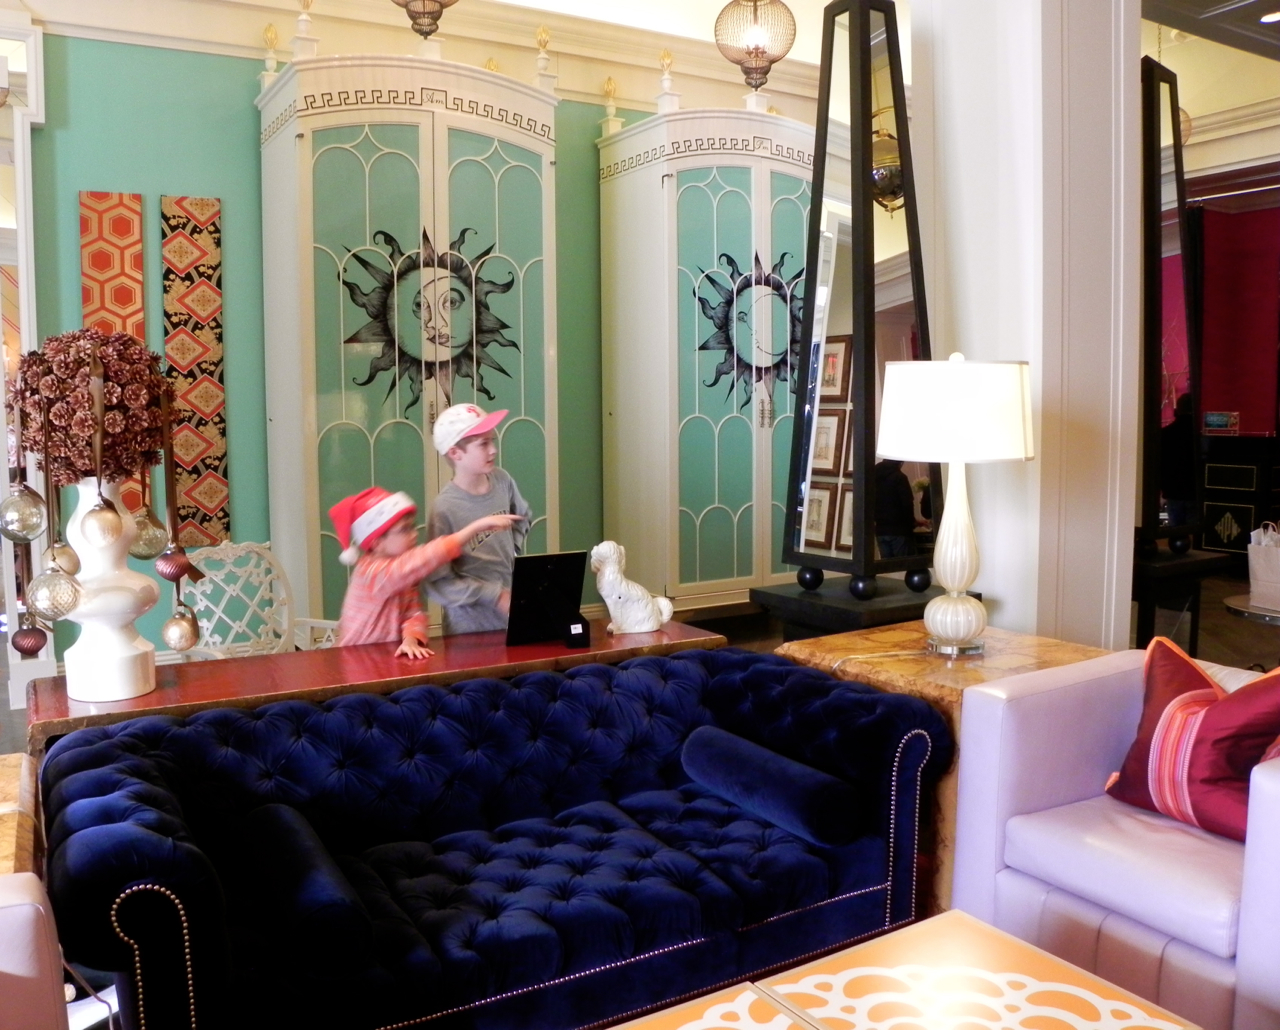 Philadelphia Family Travel Luxury And Fun At The Hotel Monaco